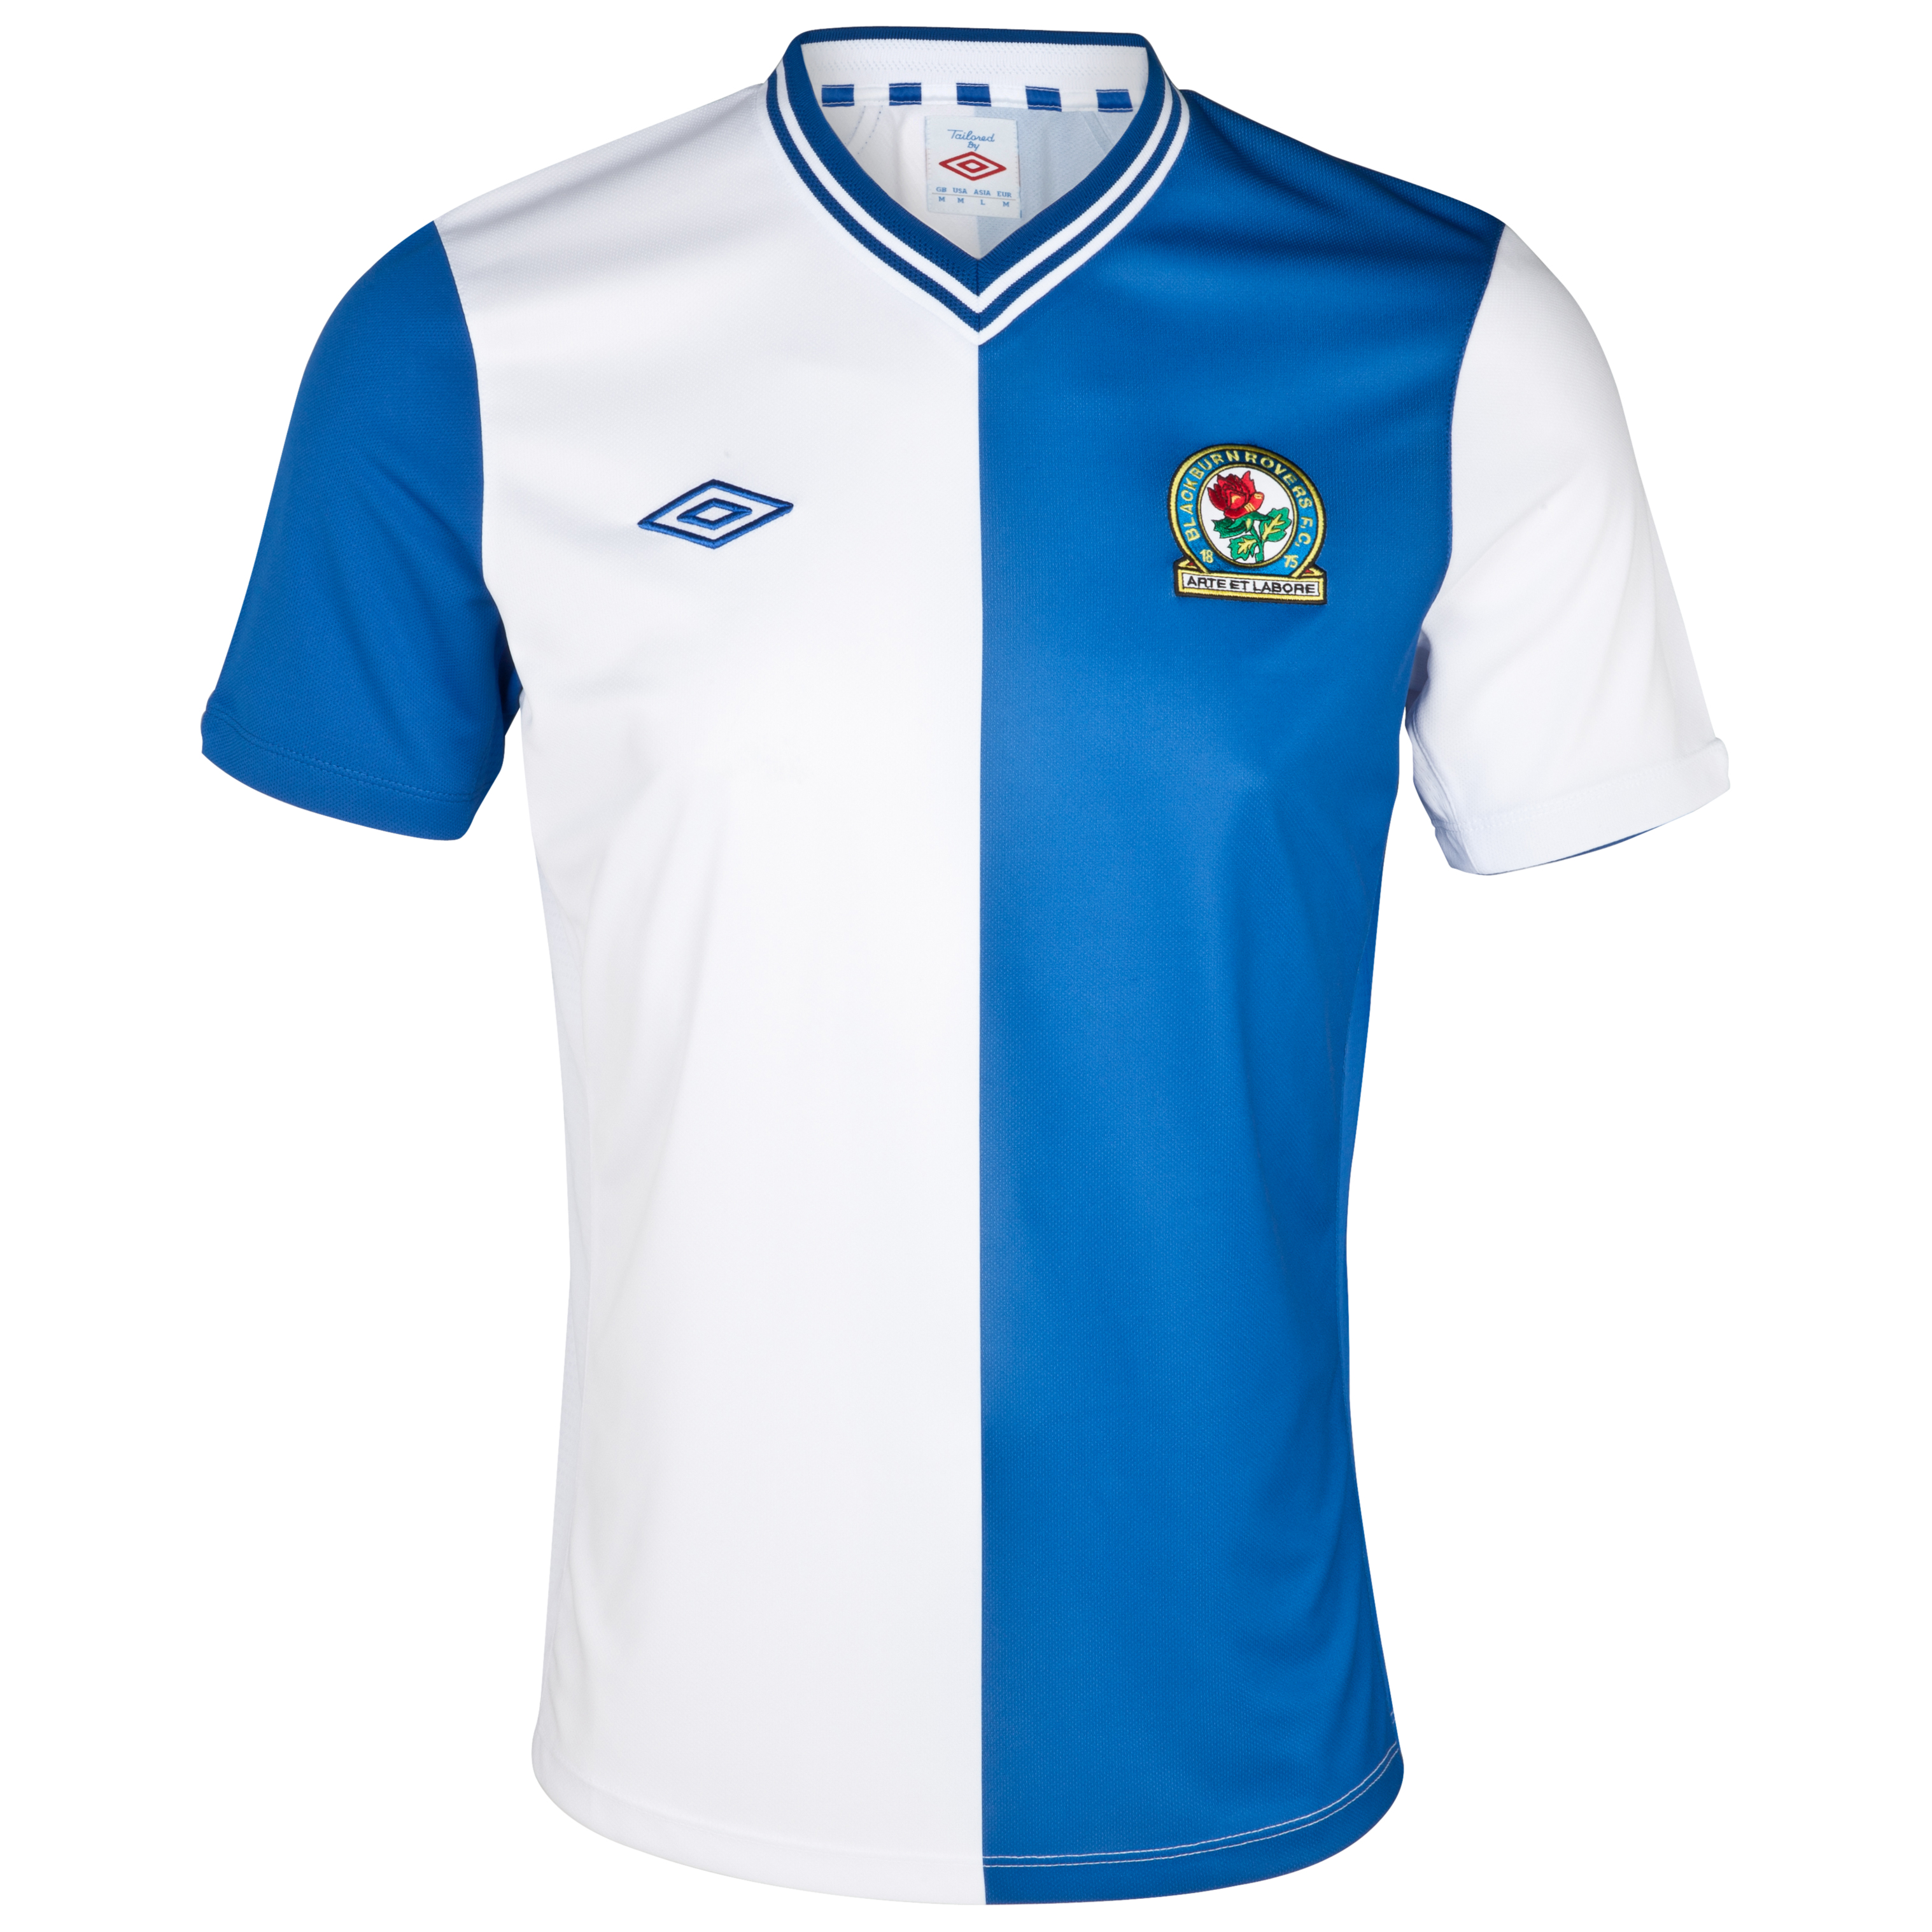 Blackburn Rovers Home Shirt 2012/13